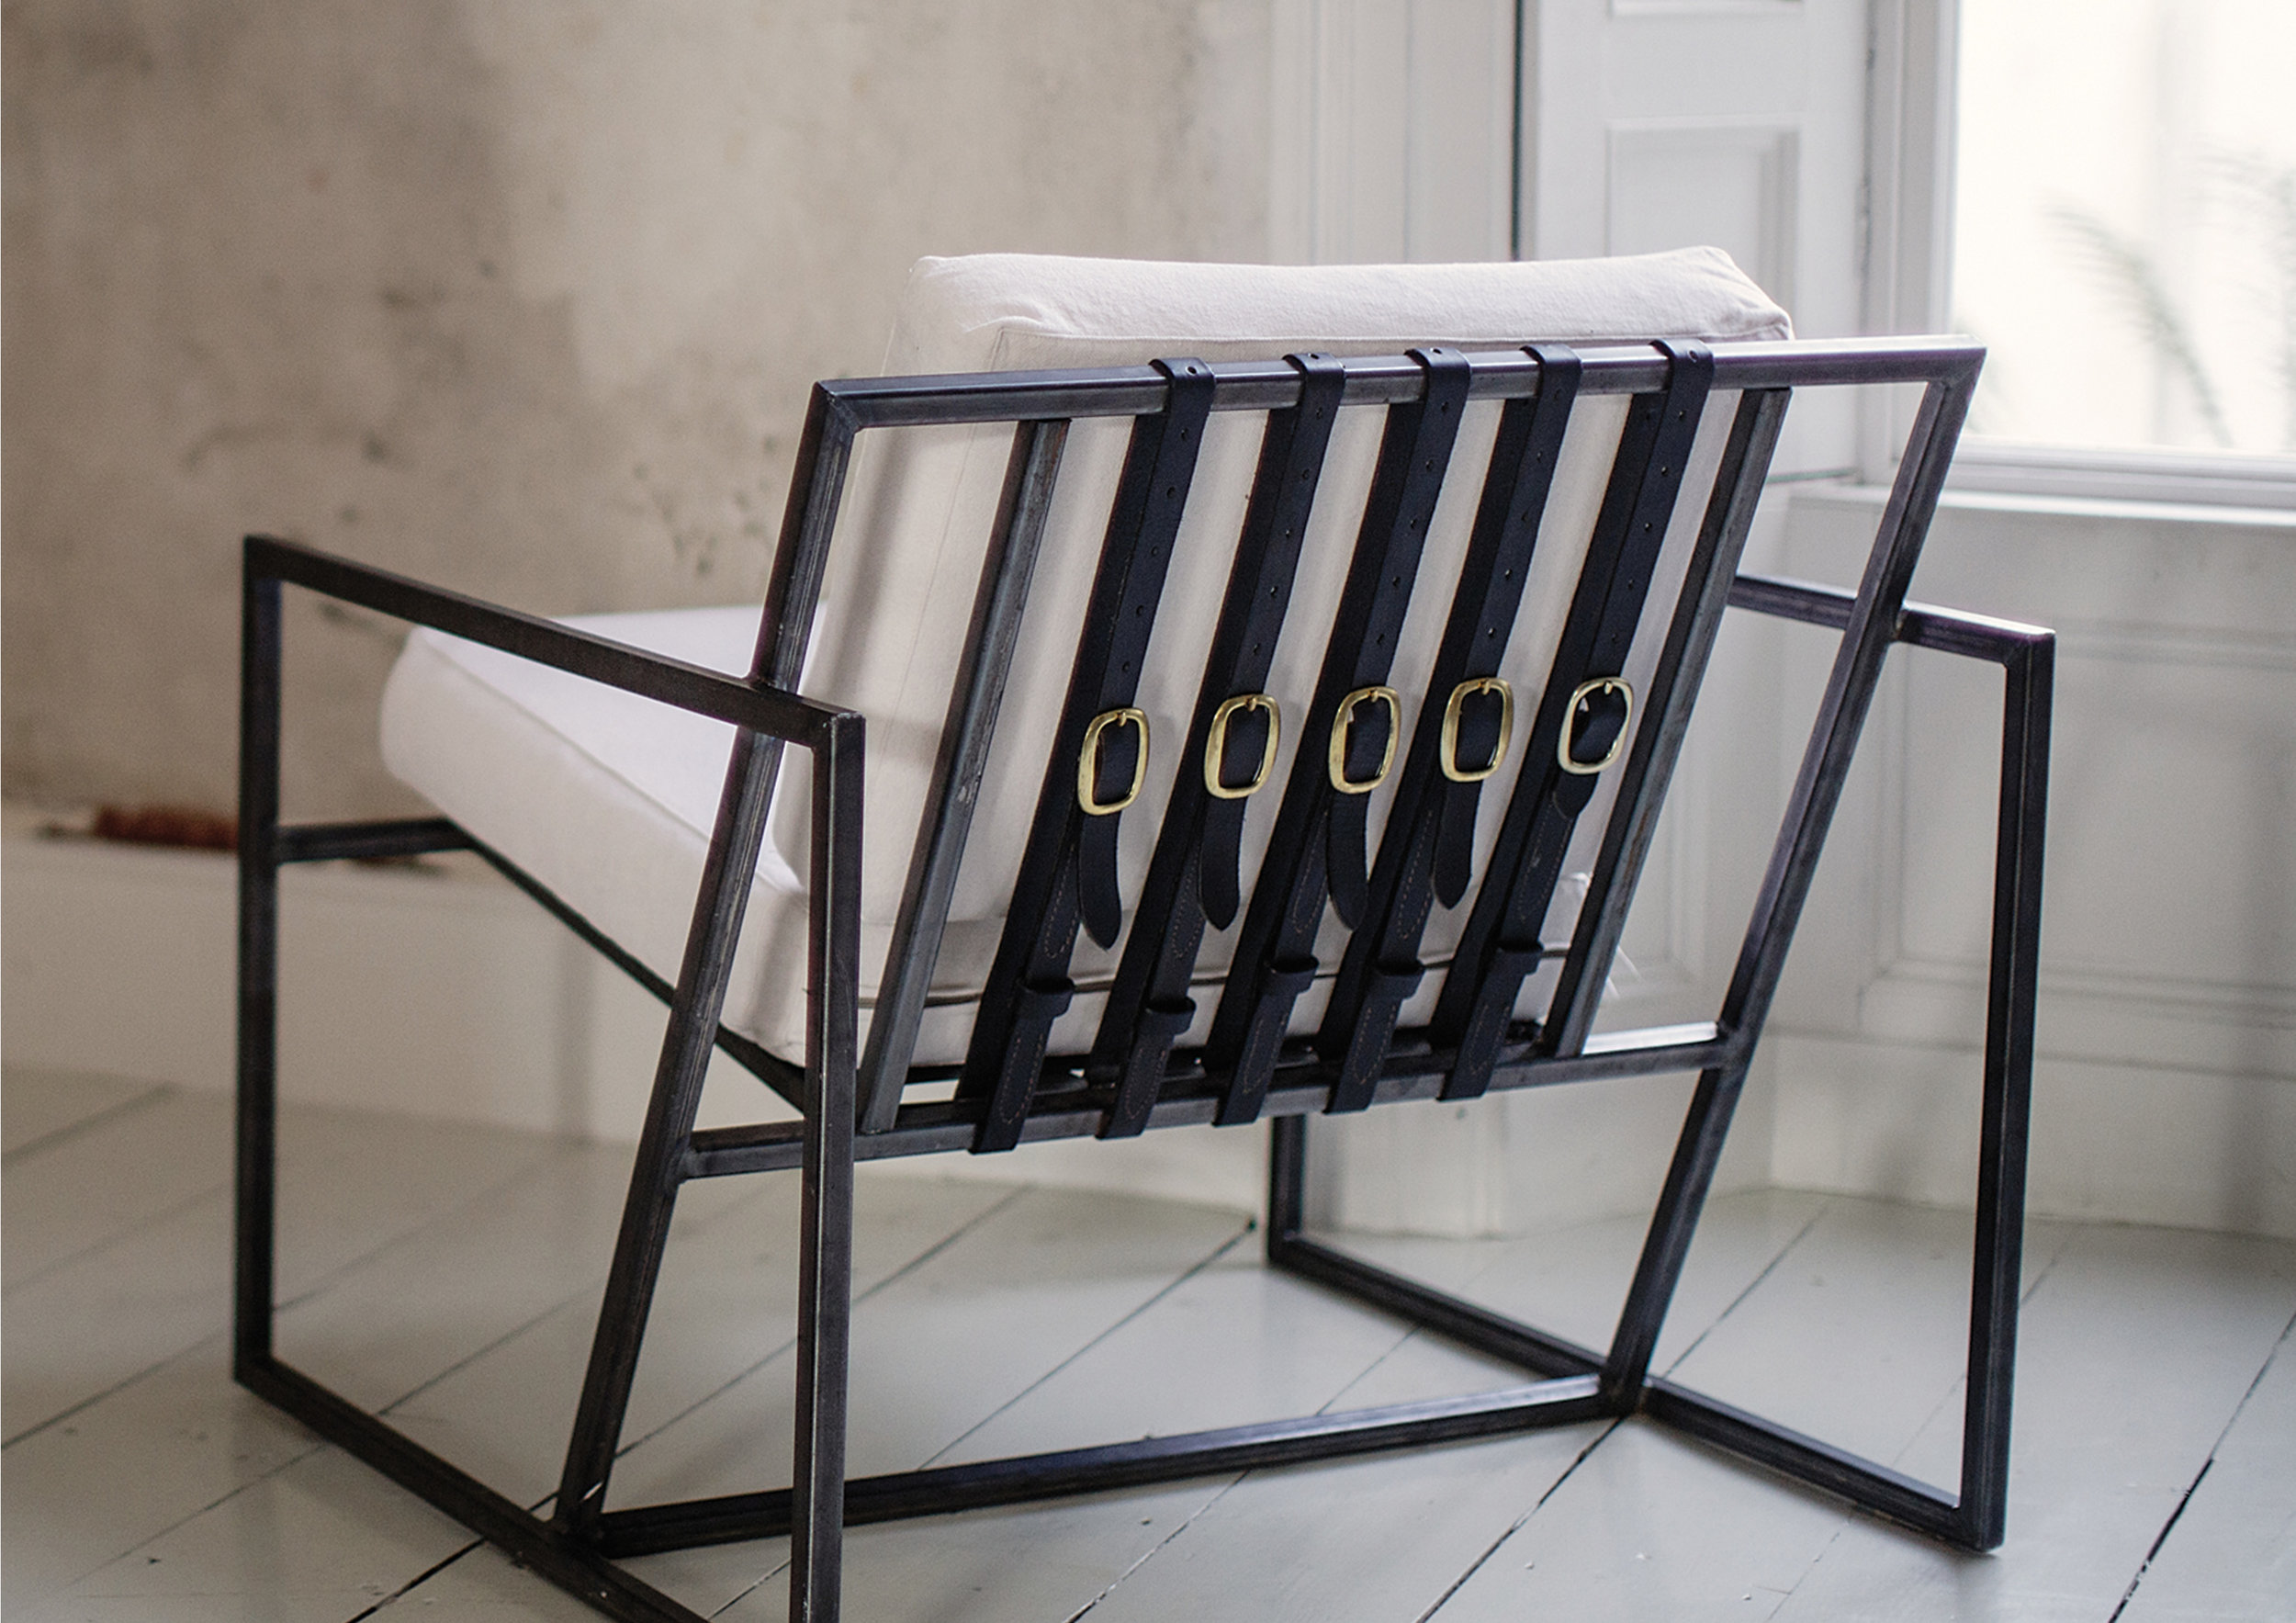 modern steel chair design cynthia rowley nailhead chairs and leather elements of action our simple elegant take on the classic arm straps frame is a versatile piece occasional furniture adaptable to any room